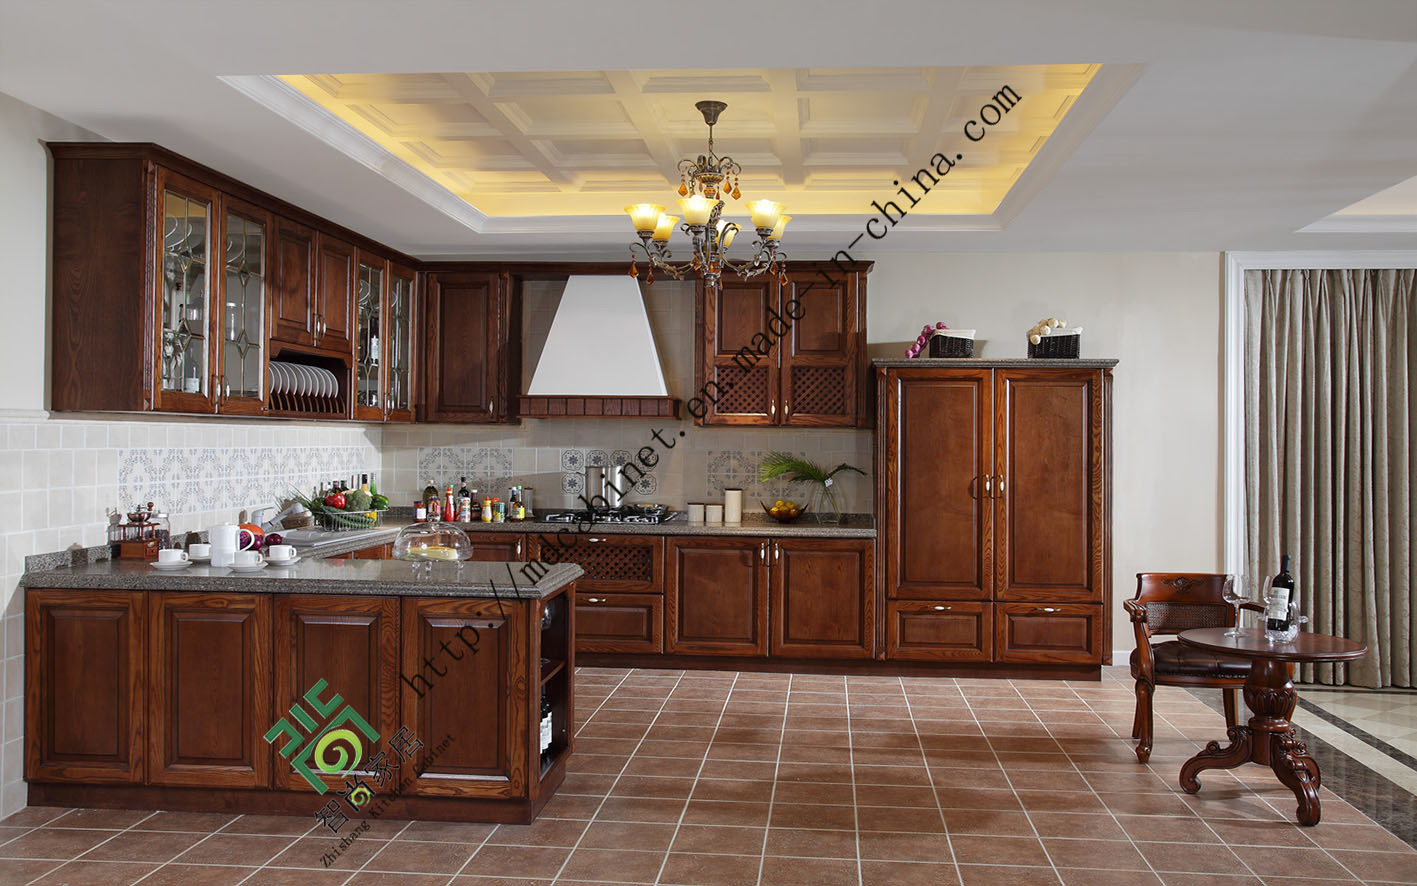 New style kitchen cabinets terraneg kitchen design for New style kitchen cabinets